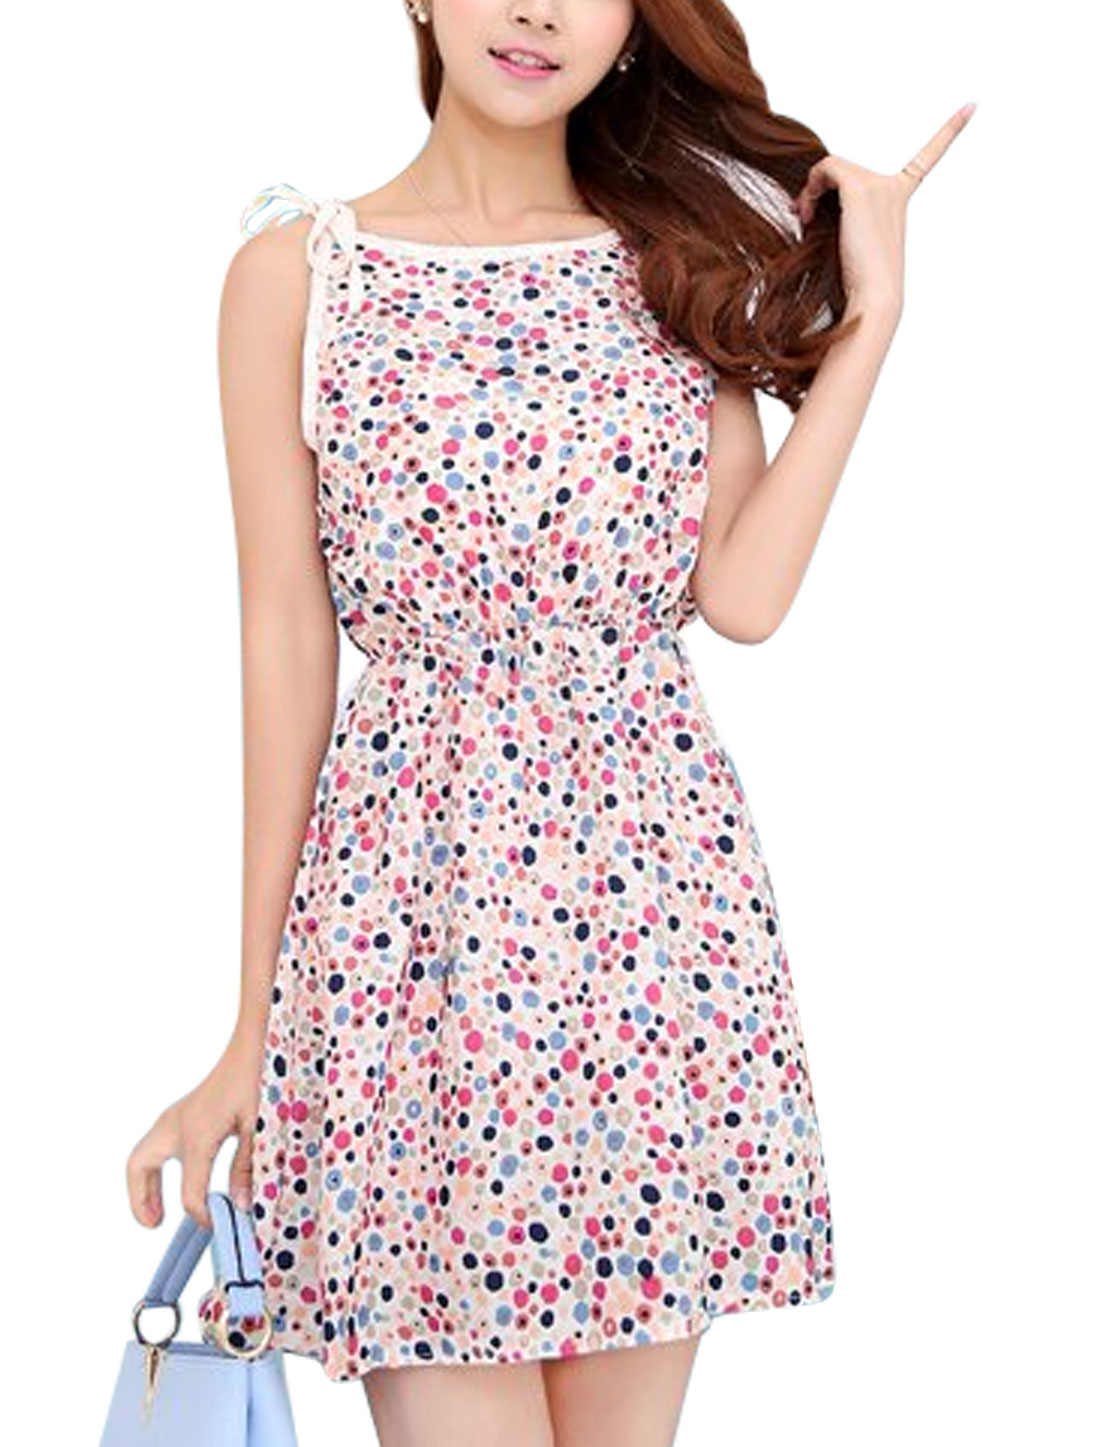 Lady Self Tie Straps Floral Prints Elastic Waist Sun Dress White XS